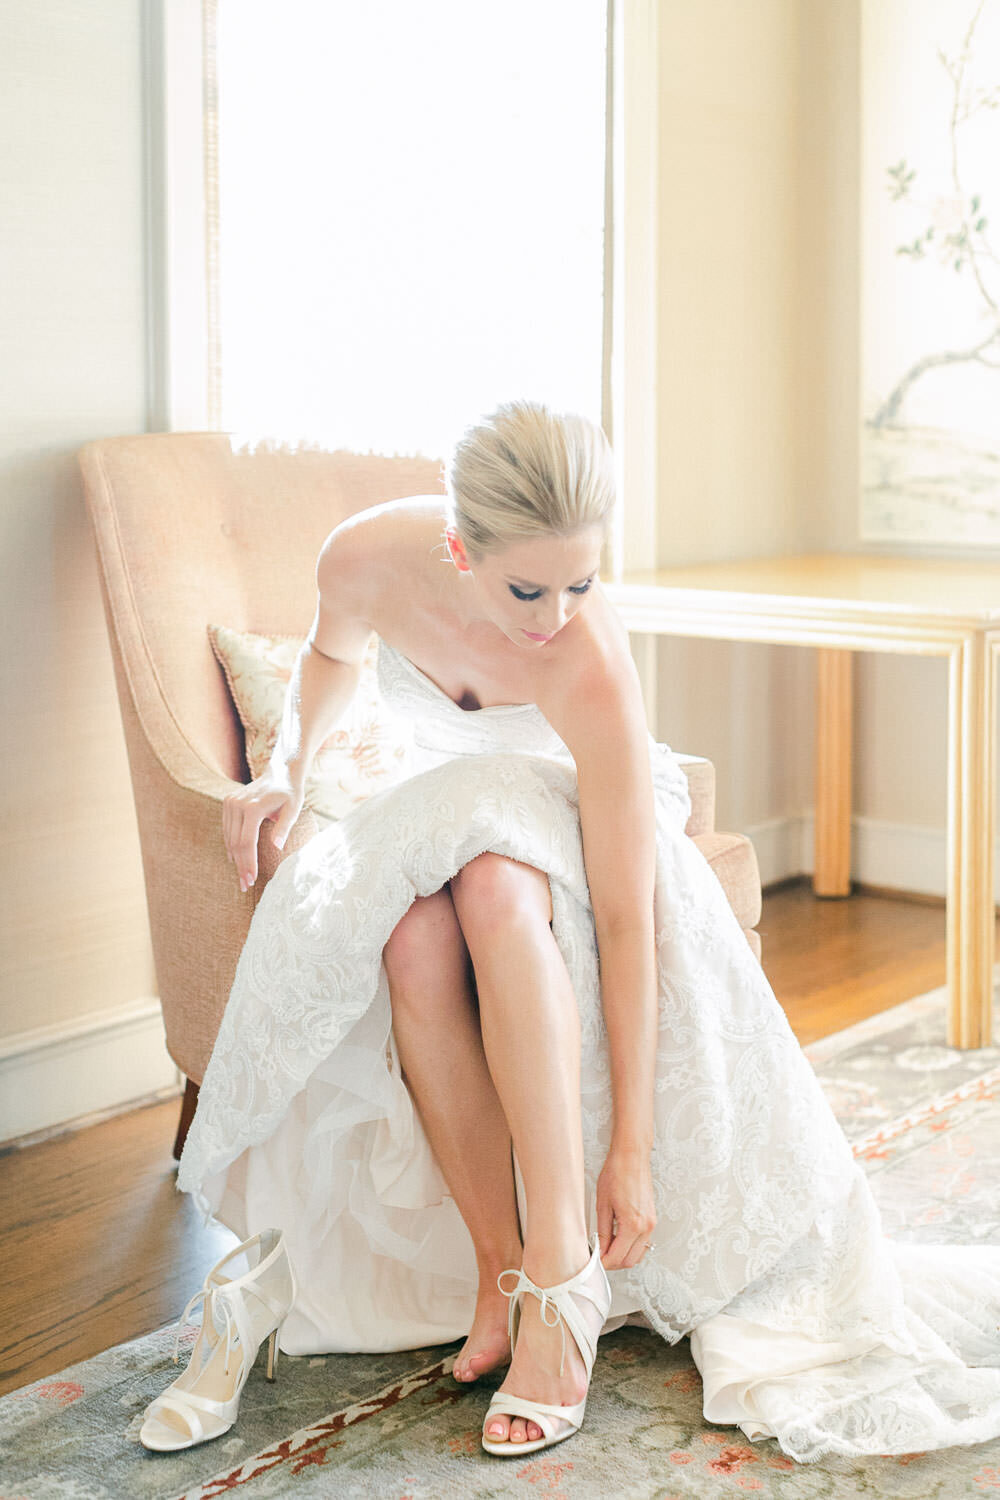 Bride sitting putting on white high heel shoes